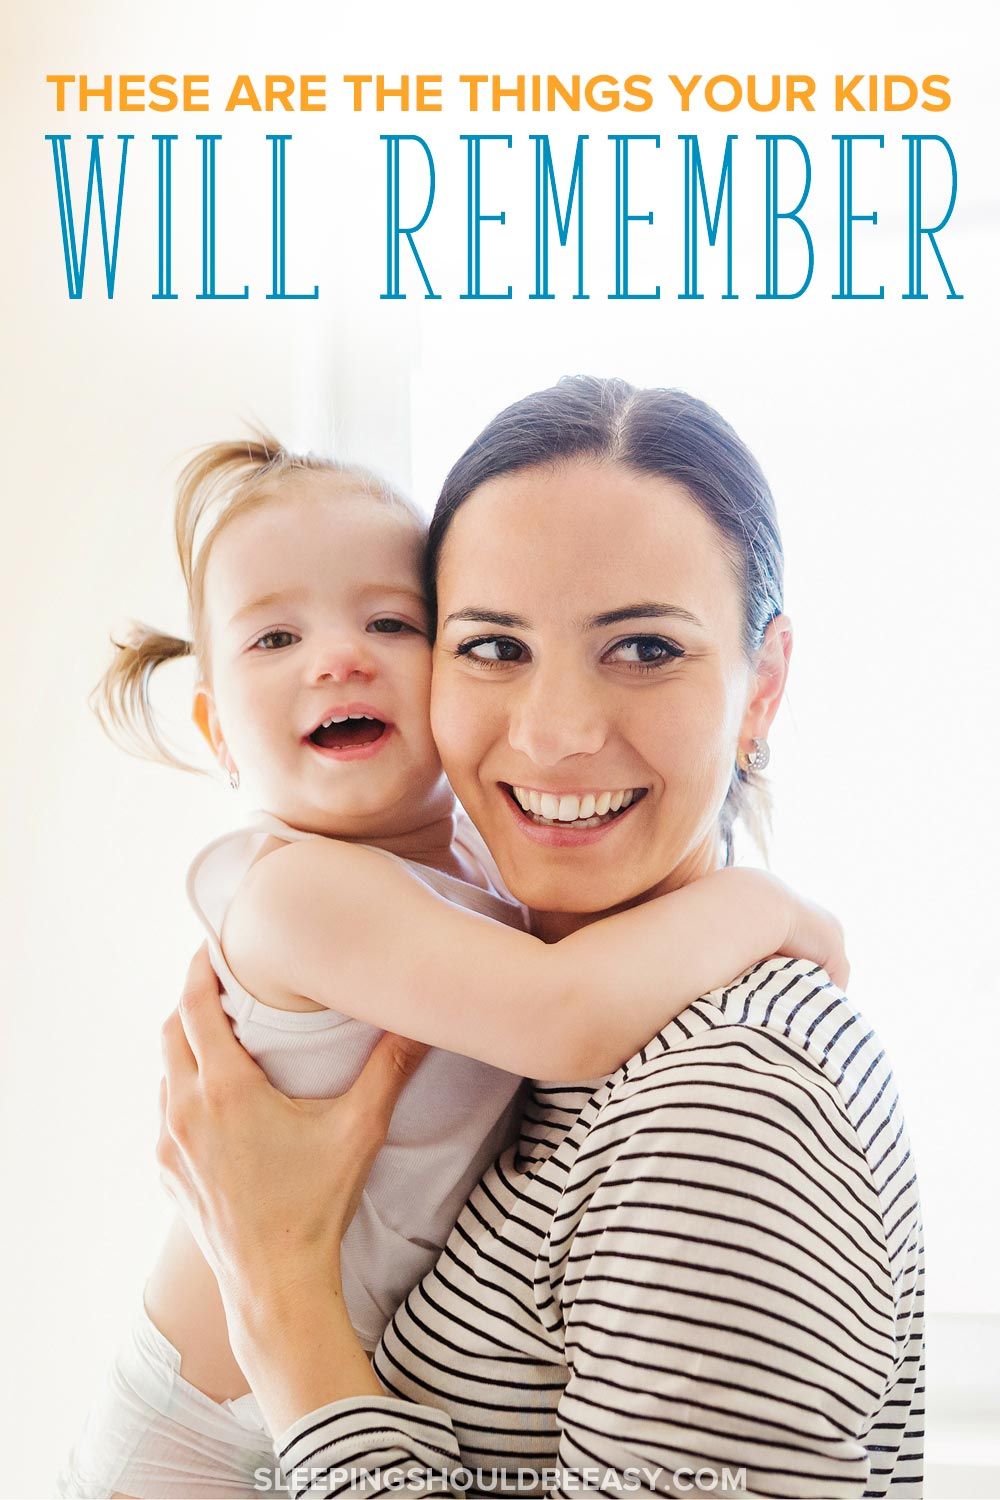 Mom holding her daughter: These are the things your kids will remember